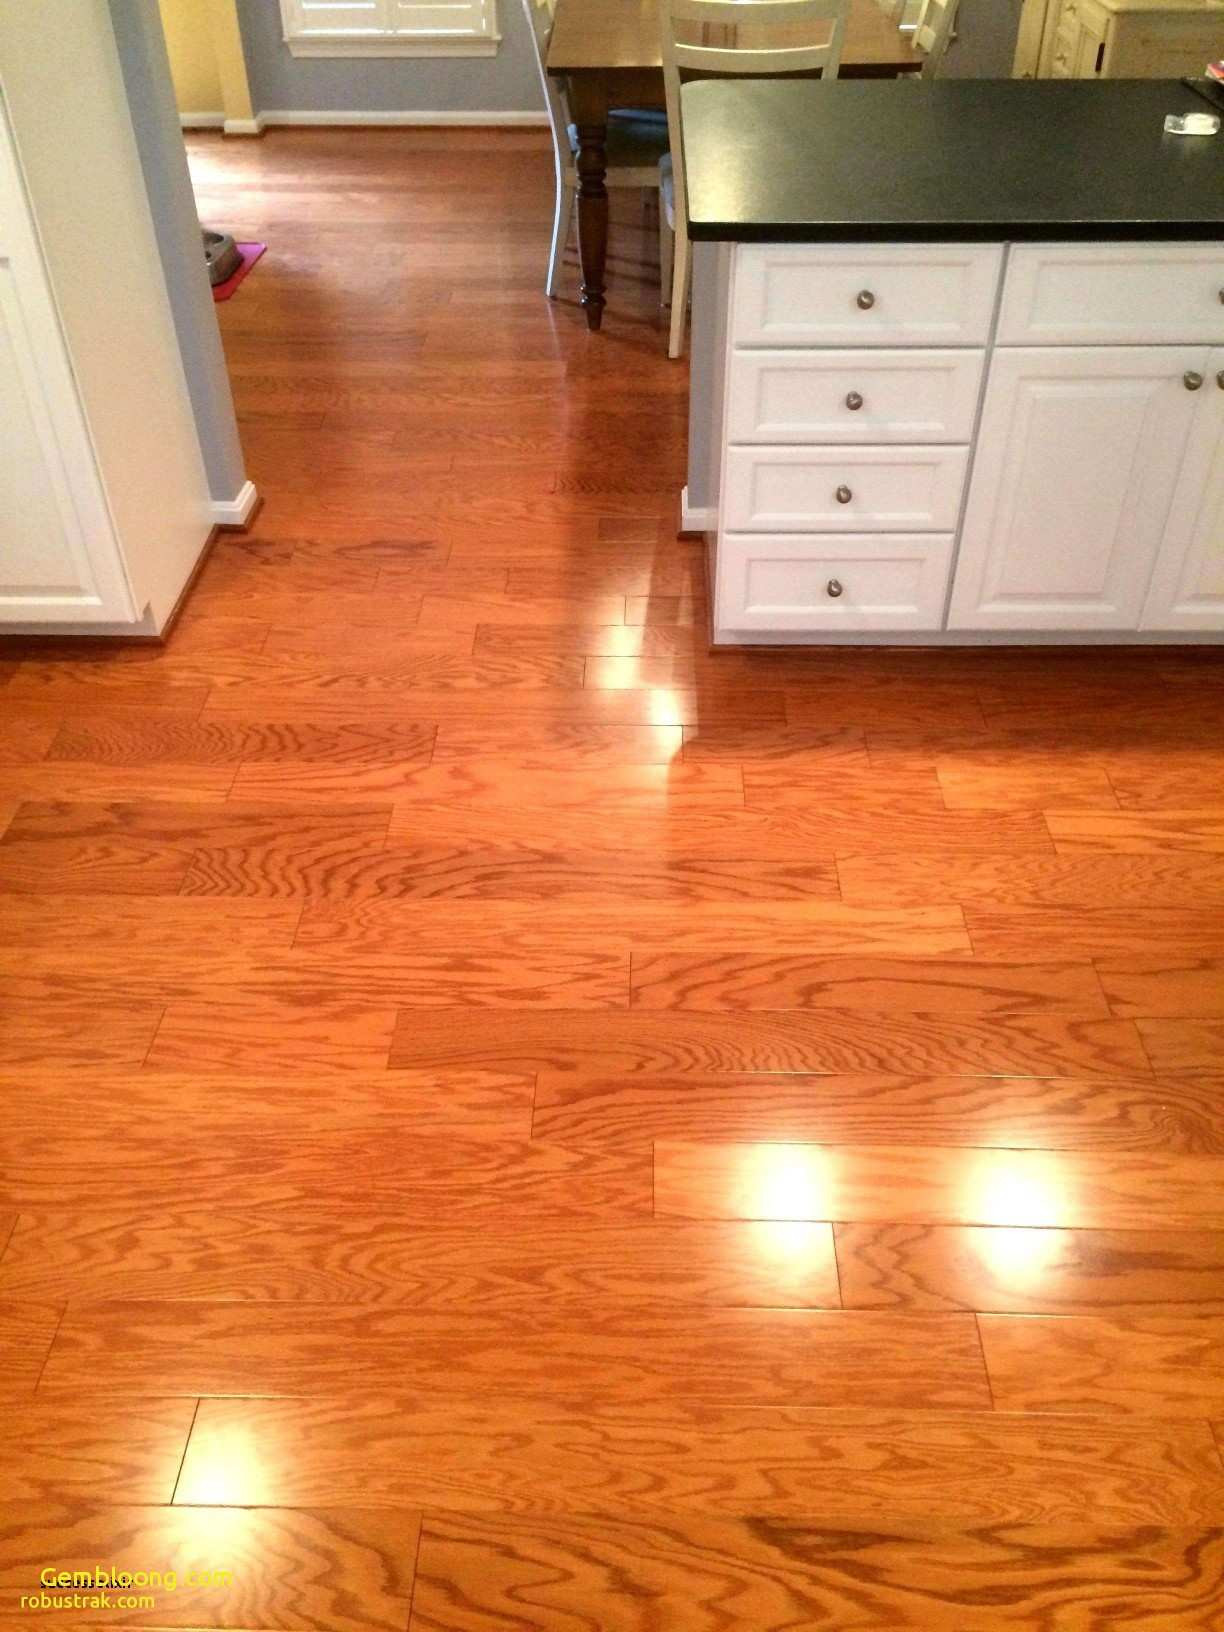 18 Ideal Hardwood Floor Transition to Stairs 2021 free download hardwood floor transition to stairs of wood for floors facesinnature throughout hardwood floors in the kitchen fresh where to buy hardwood flooring inspirational 0d grace place barnegat